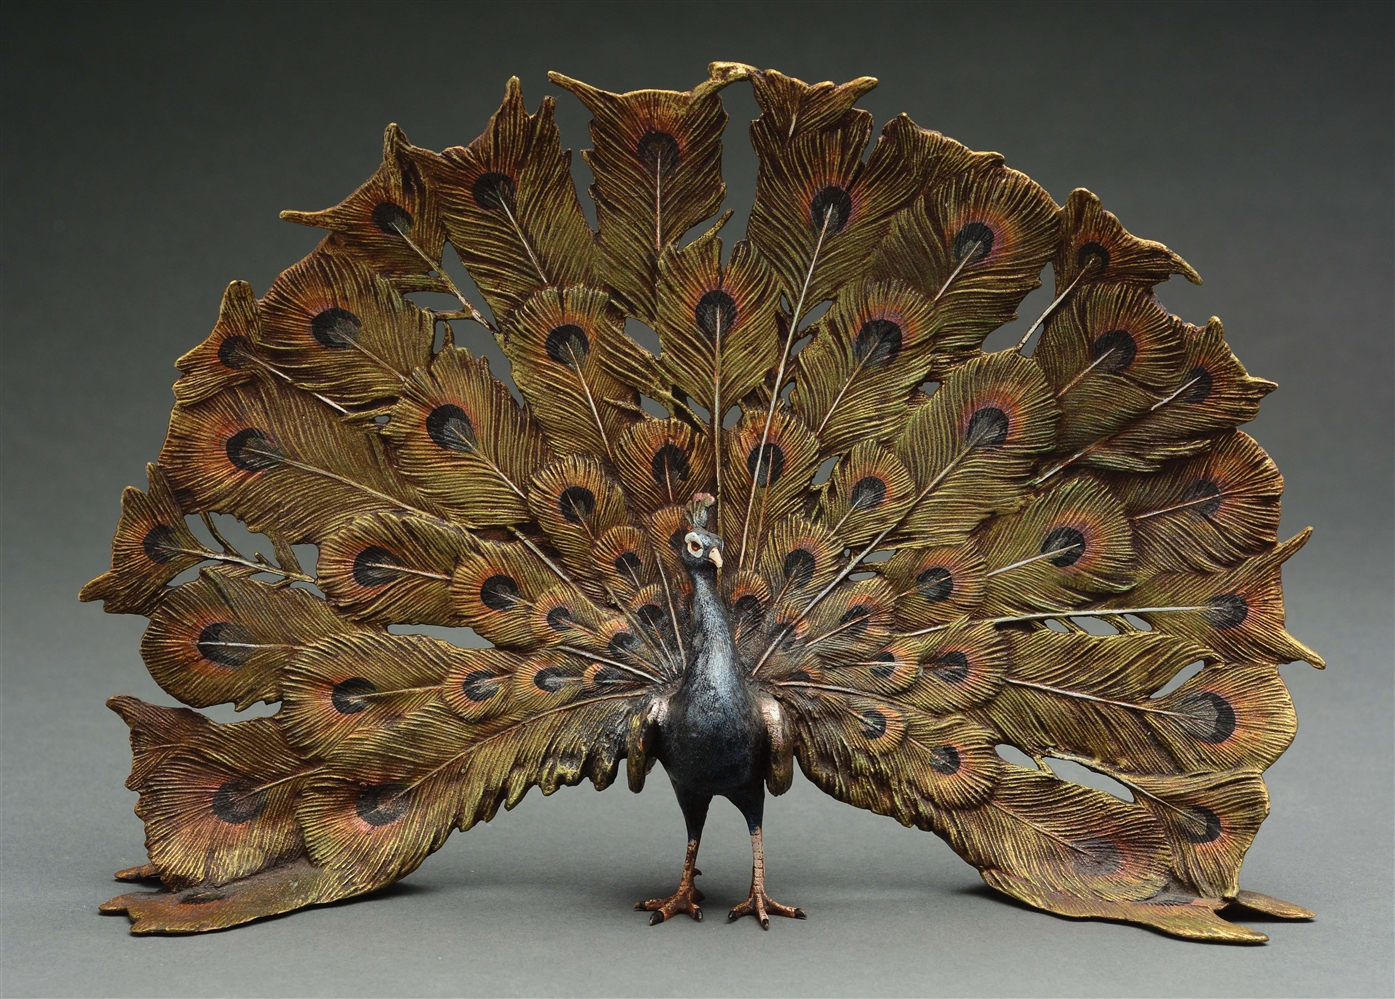 Carl Kauba (1865 - 1922) Cold-Painted Bronze of a Peacock.